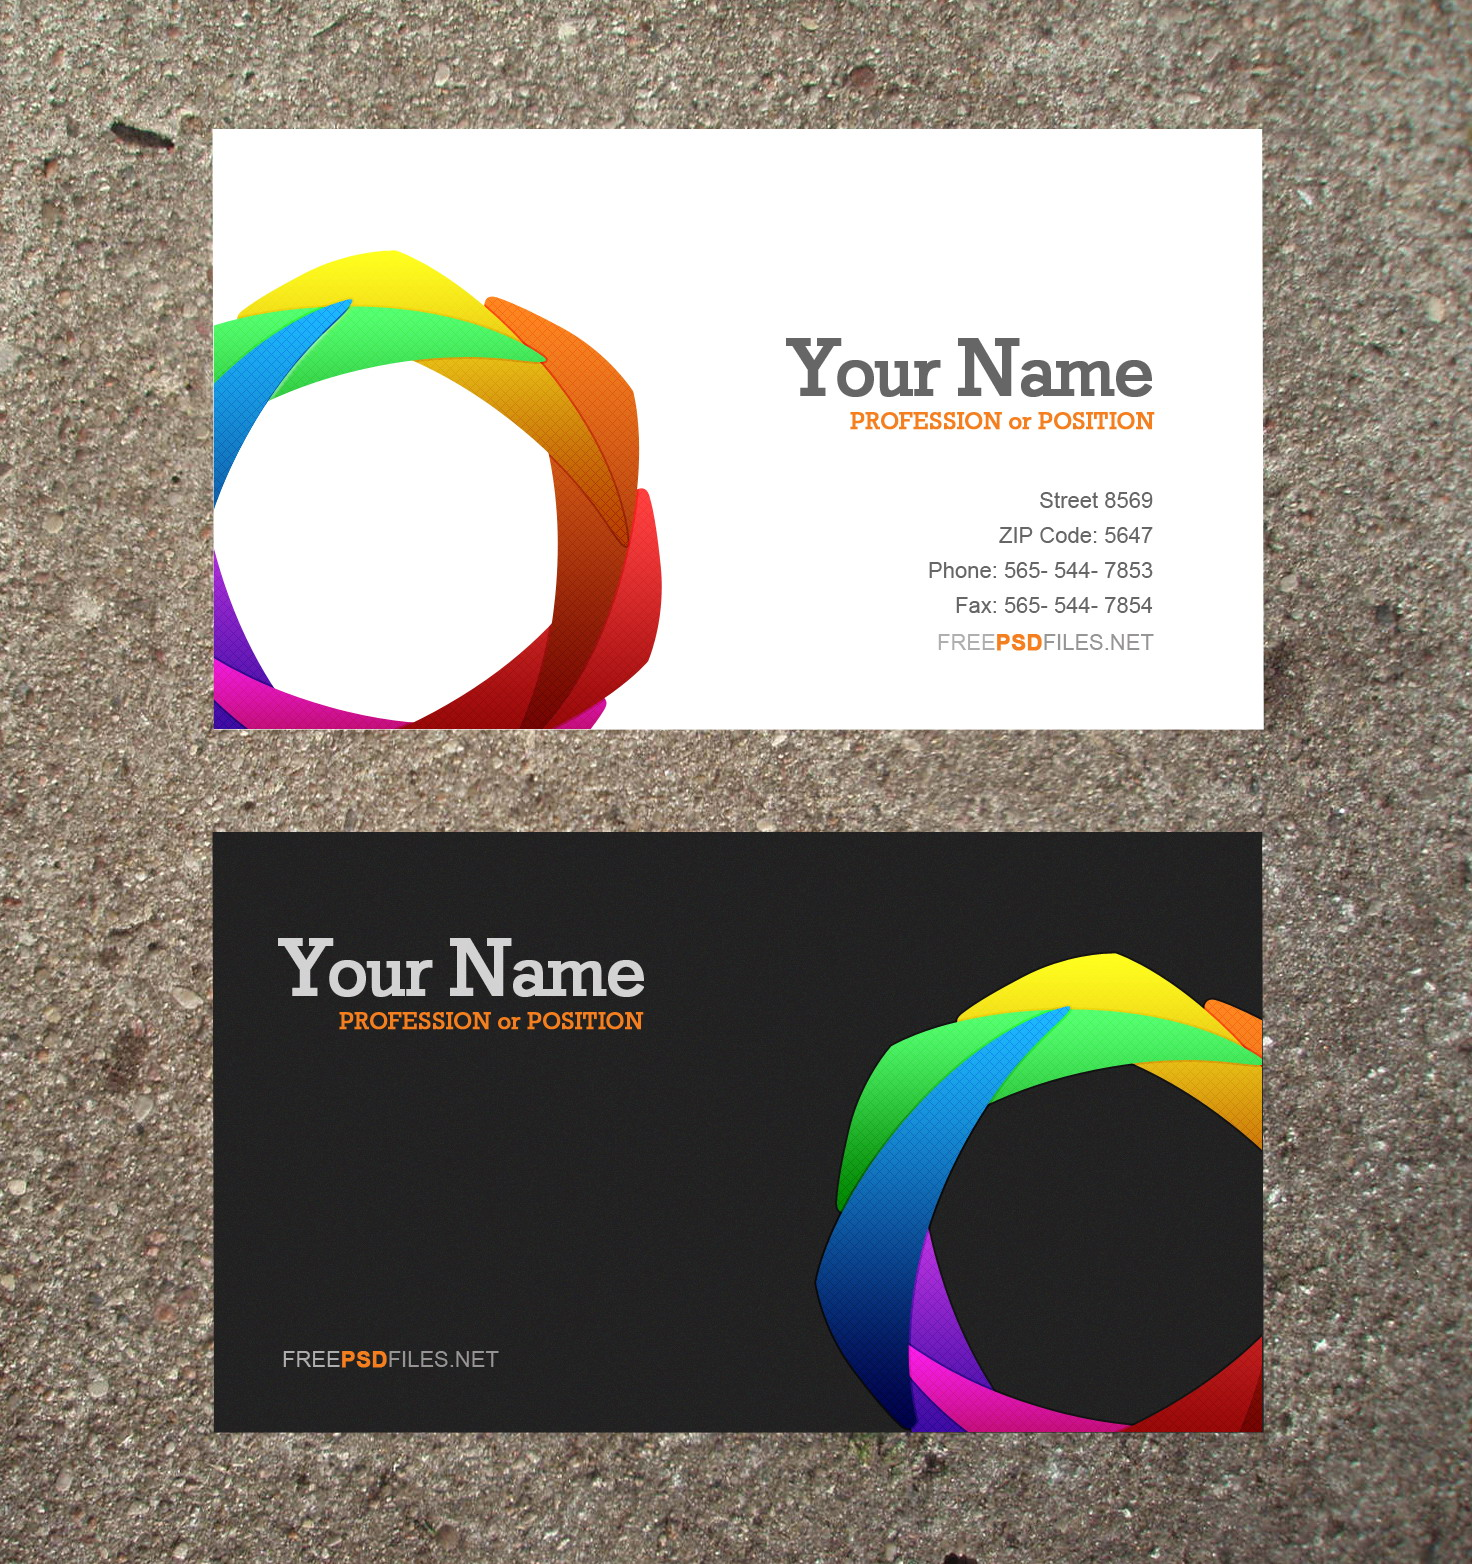 Template for business cards free download dawaydabrowa template for business cards free download flashek